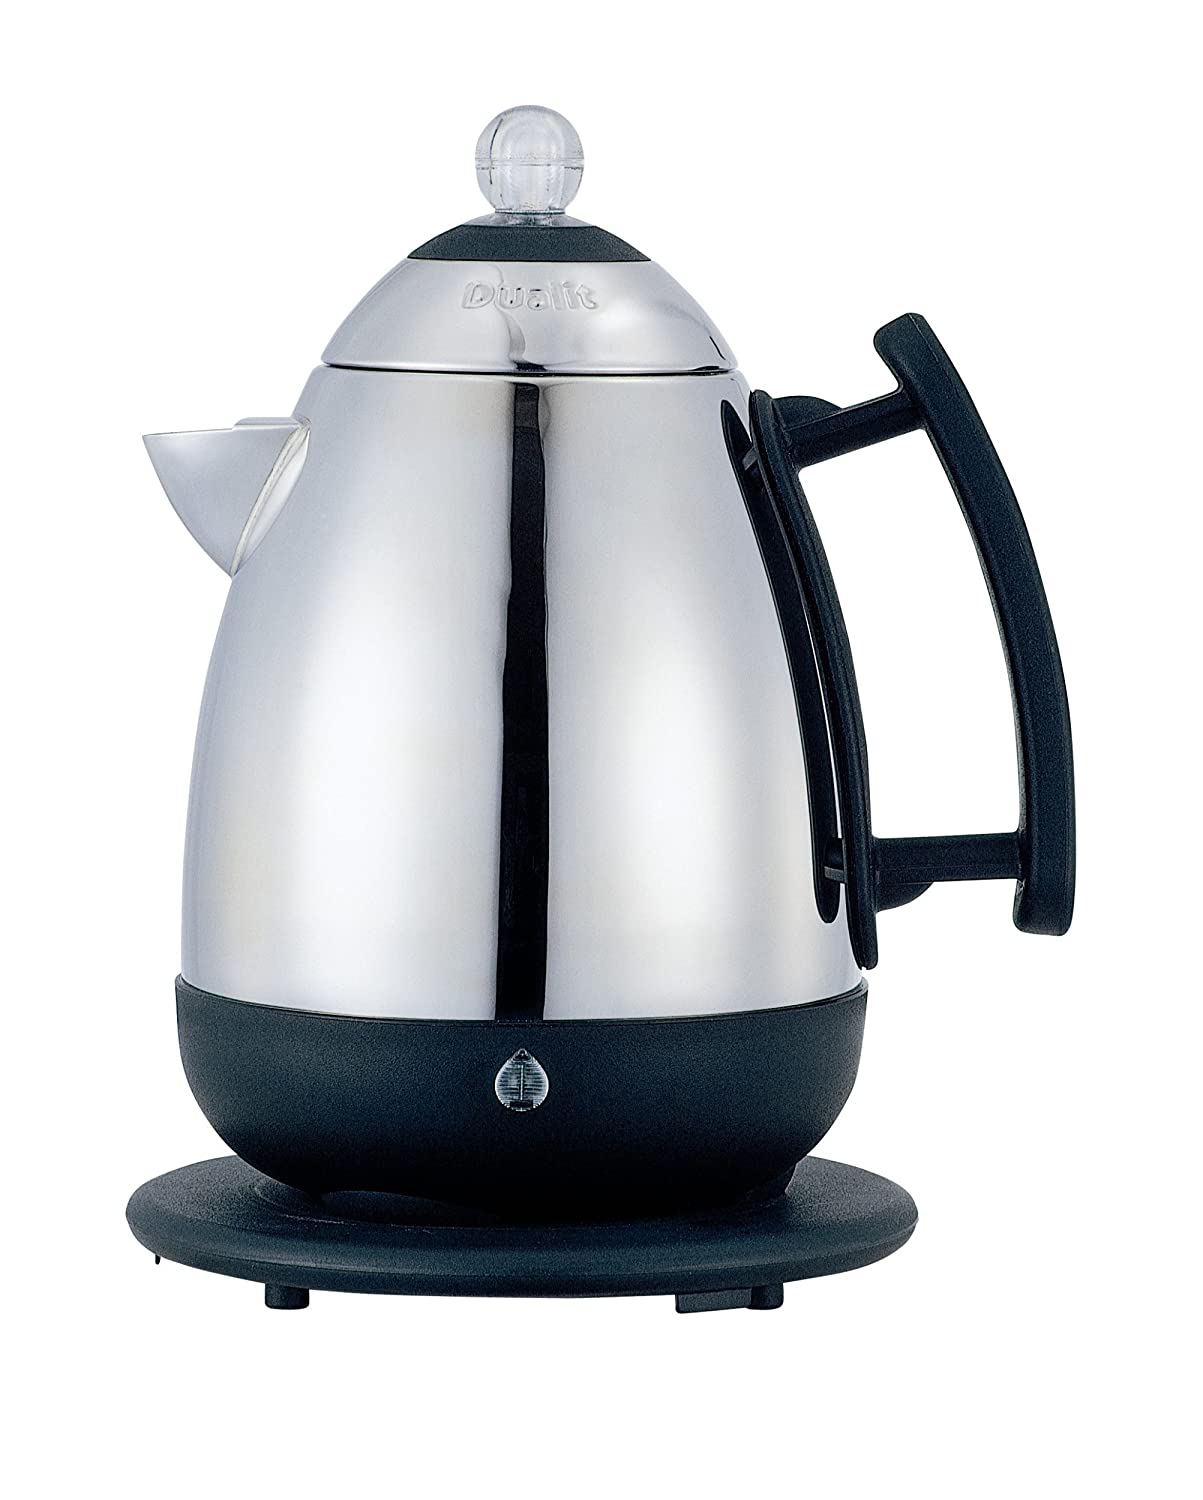 Dualit Cordless Coffee Percolator Chrome 84036 coffee tea espresso coffee maker makers percolators